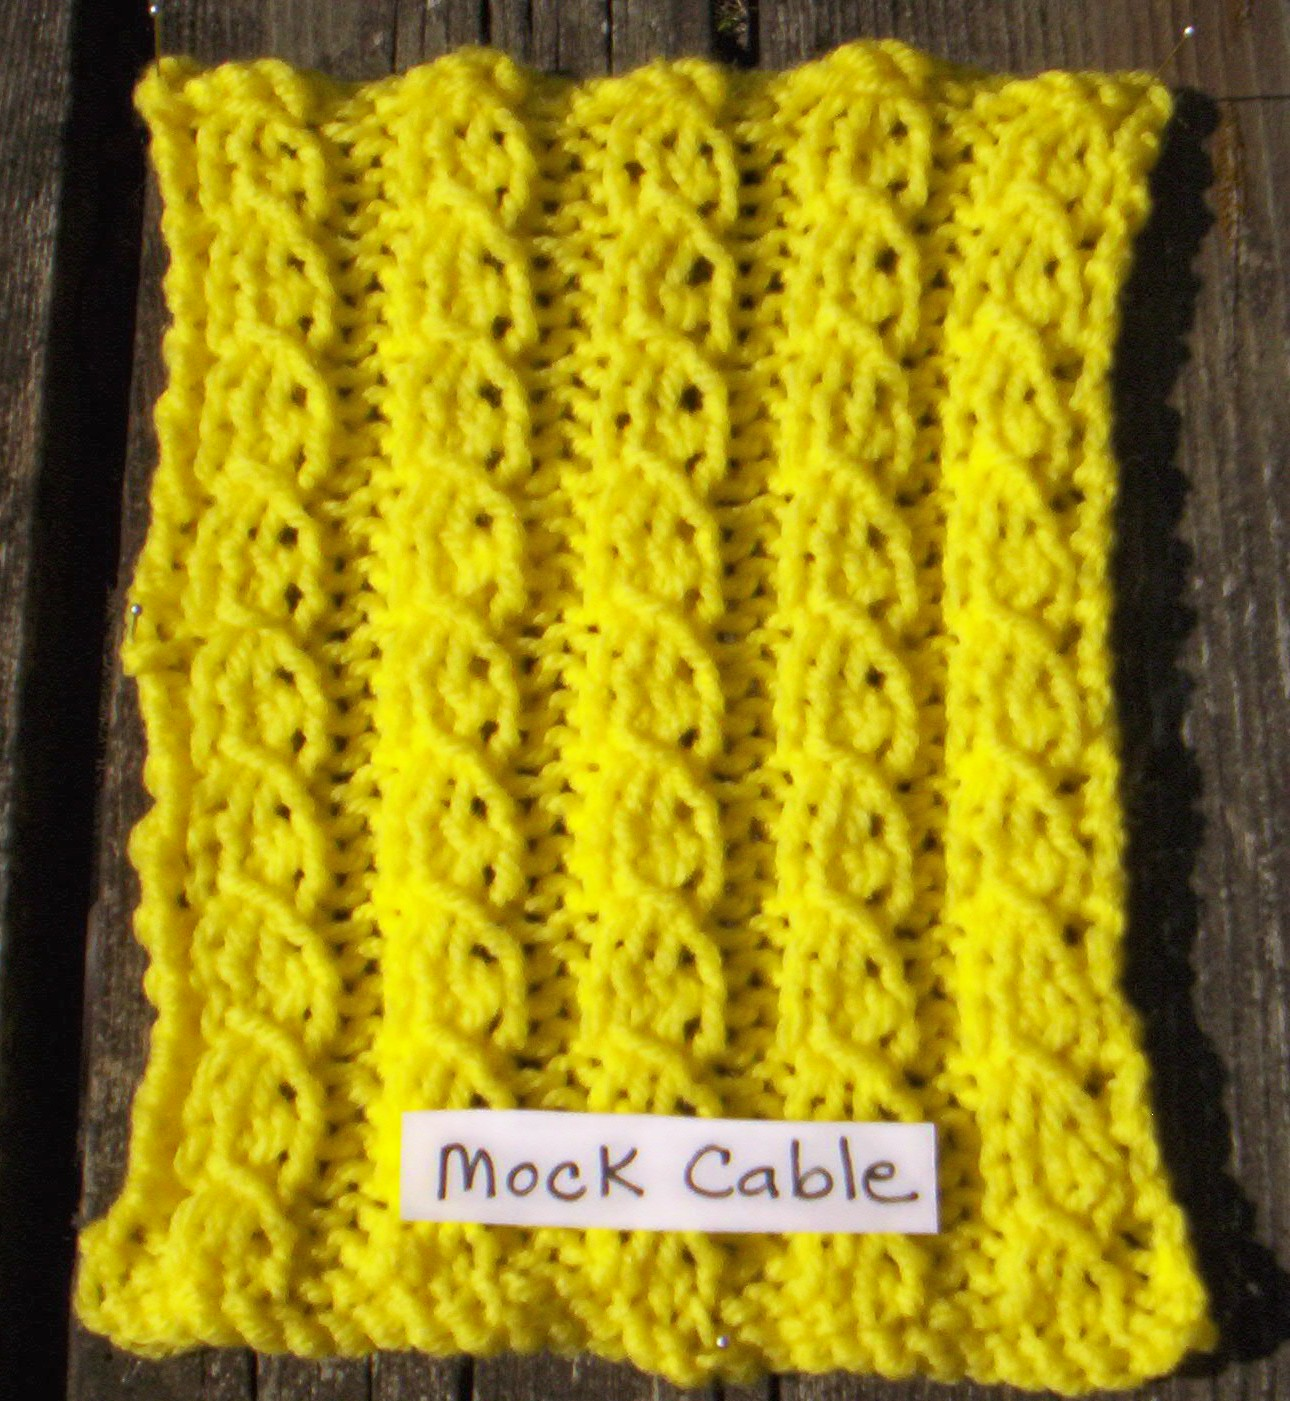 Knitting Stitch Patterns Mock Cable : Patterns-Knit Squares The Ghana Project/Key of Hope